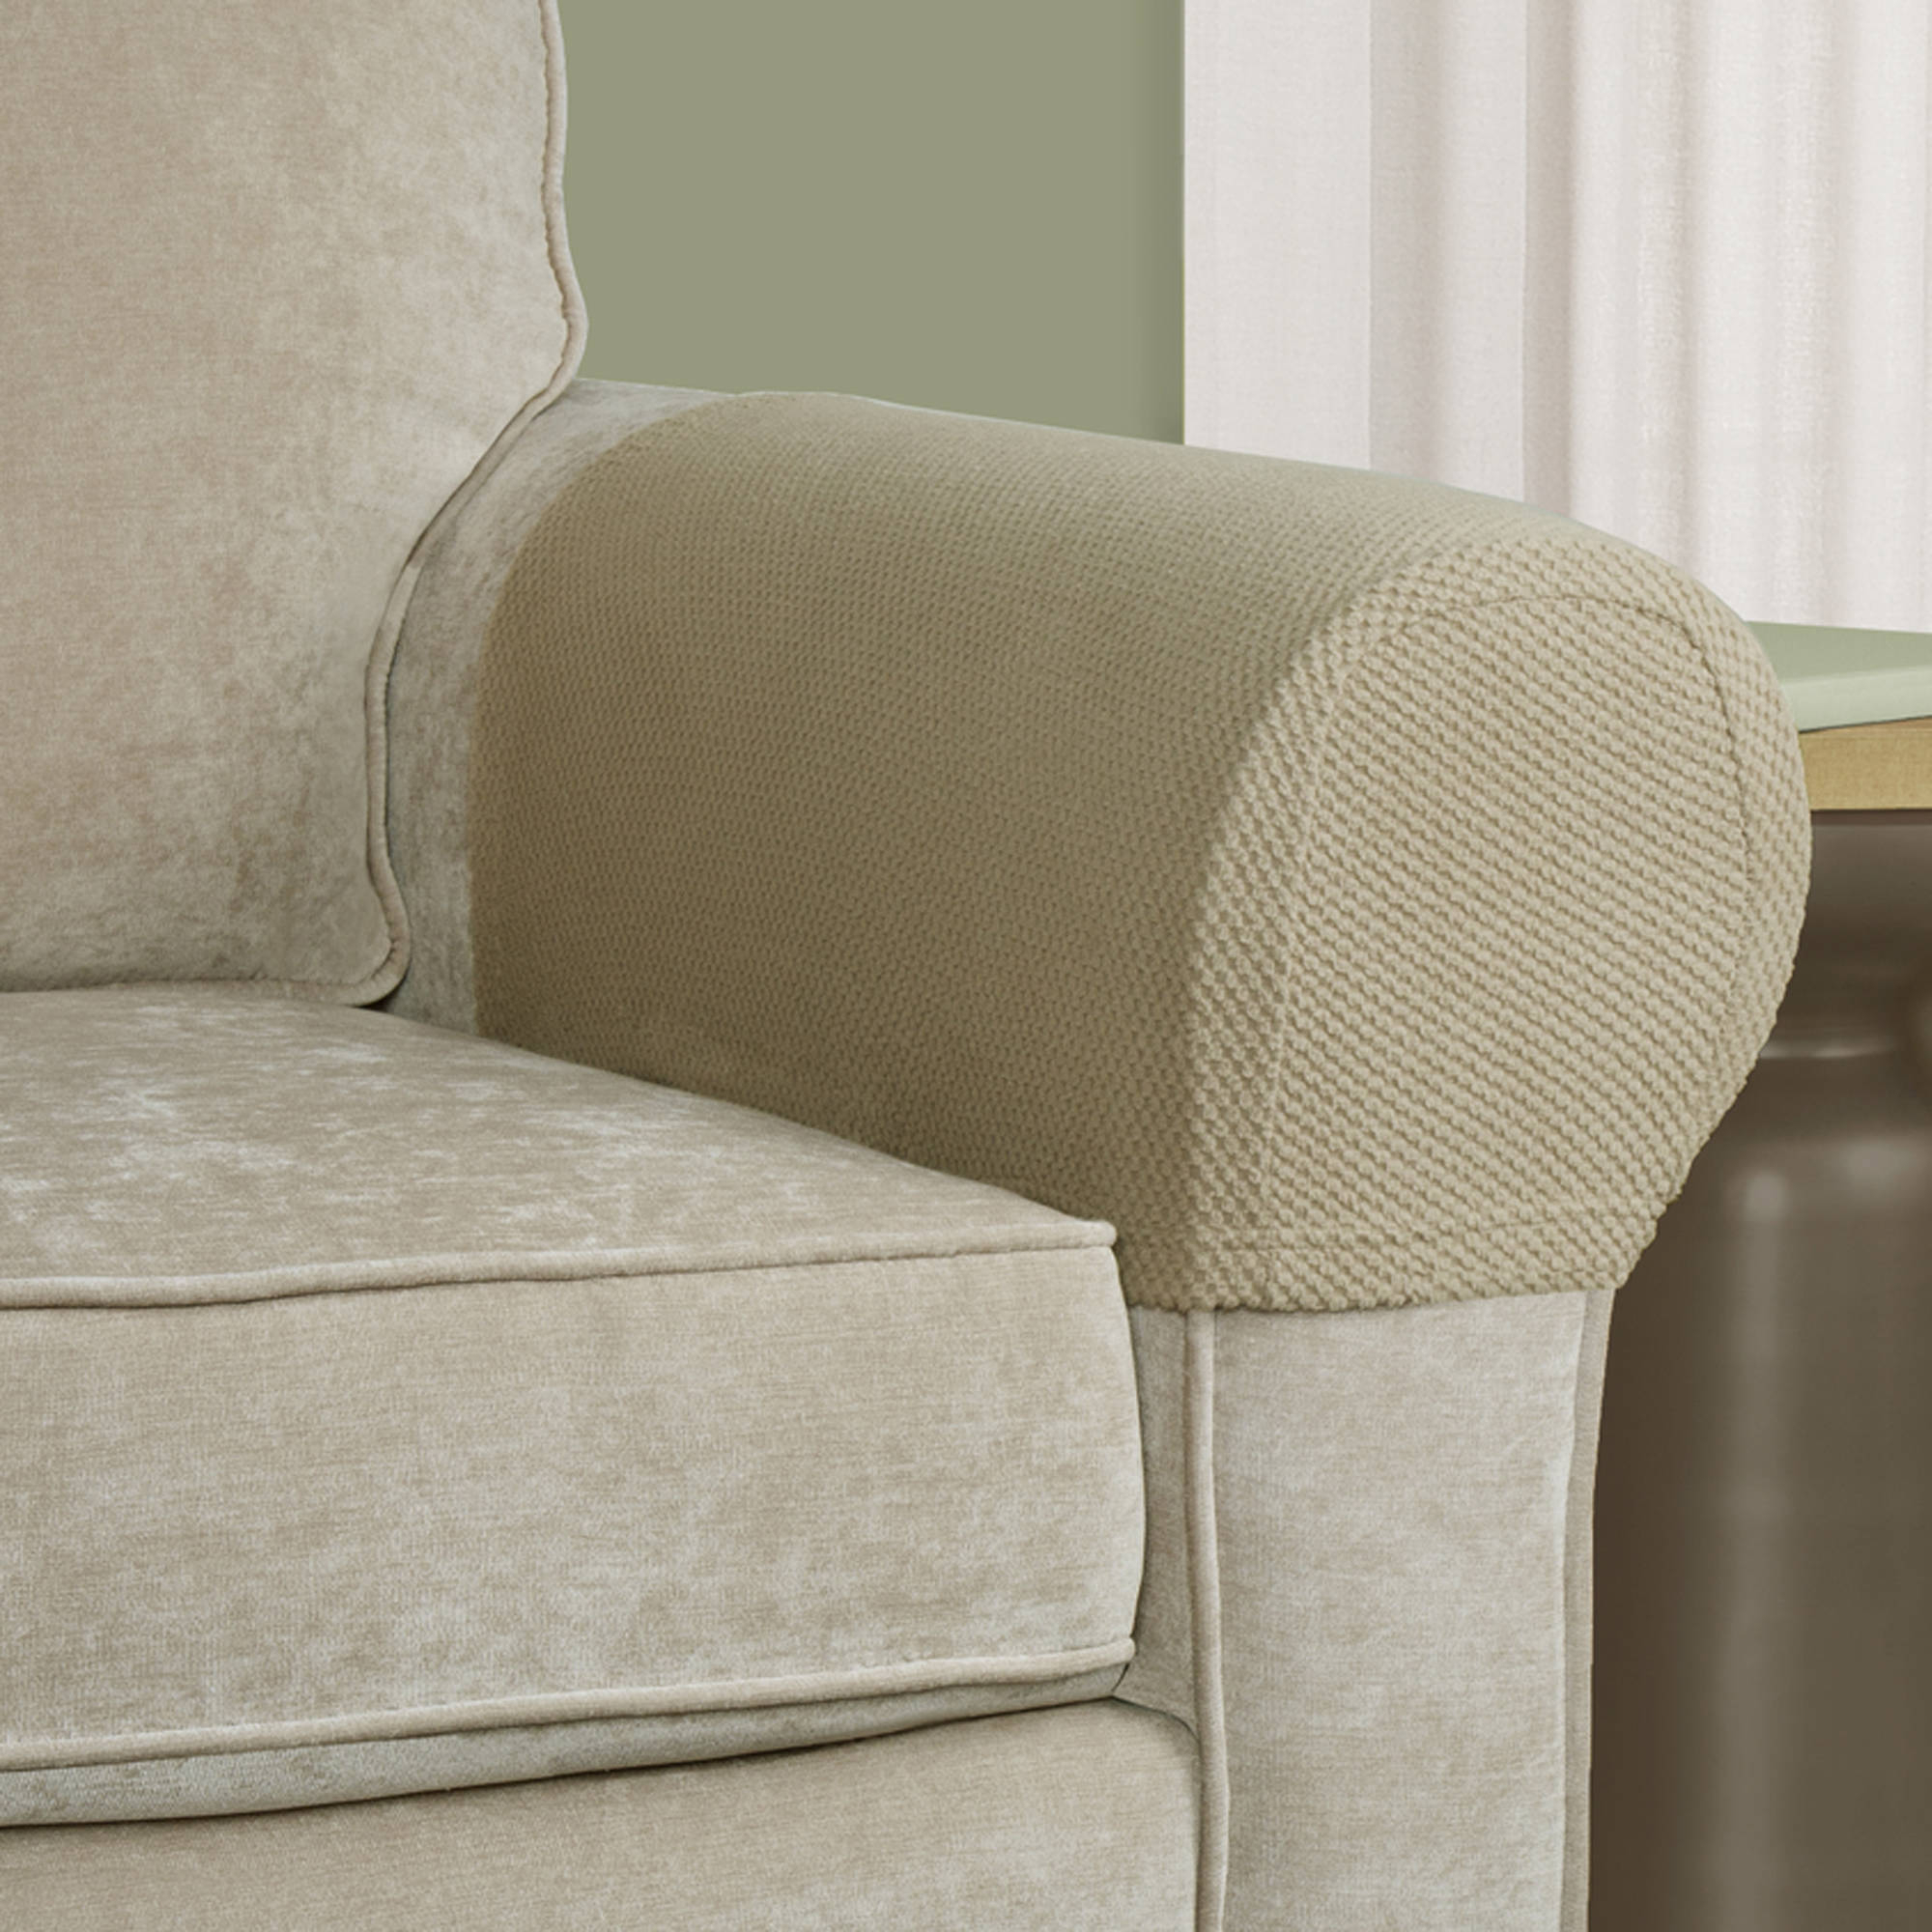 Most Up To Date Furniture: Sofa Covers At Walmart For A Slightly Loose And Casual Pertaining To Sofa And Chair Covers (View 12 of 20)